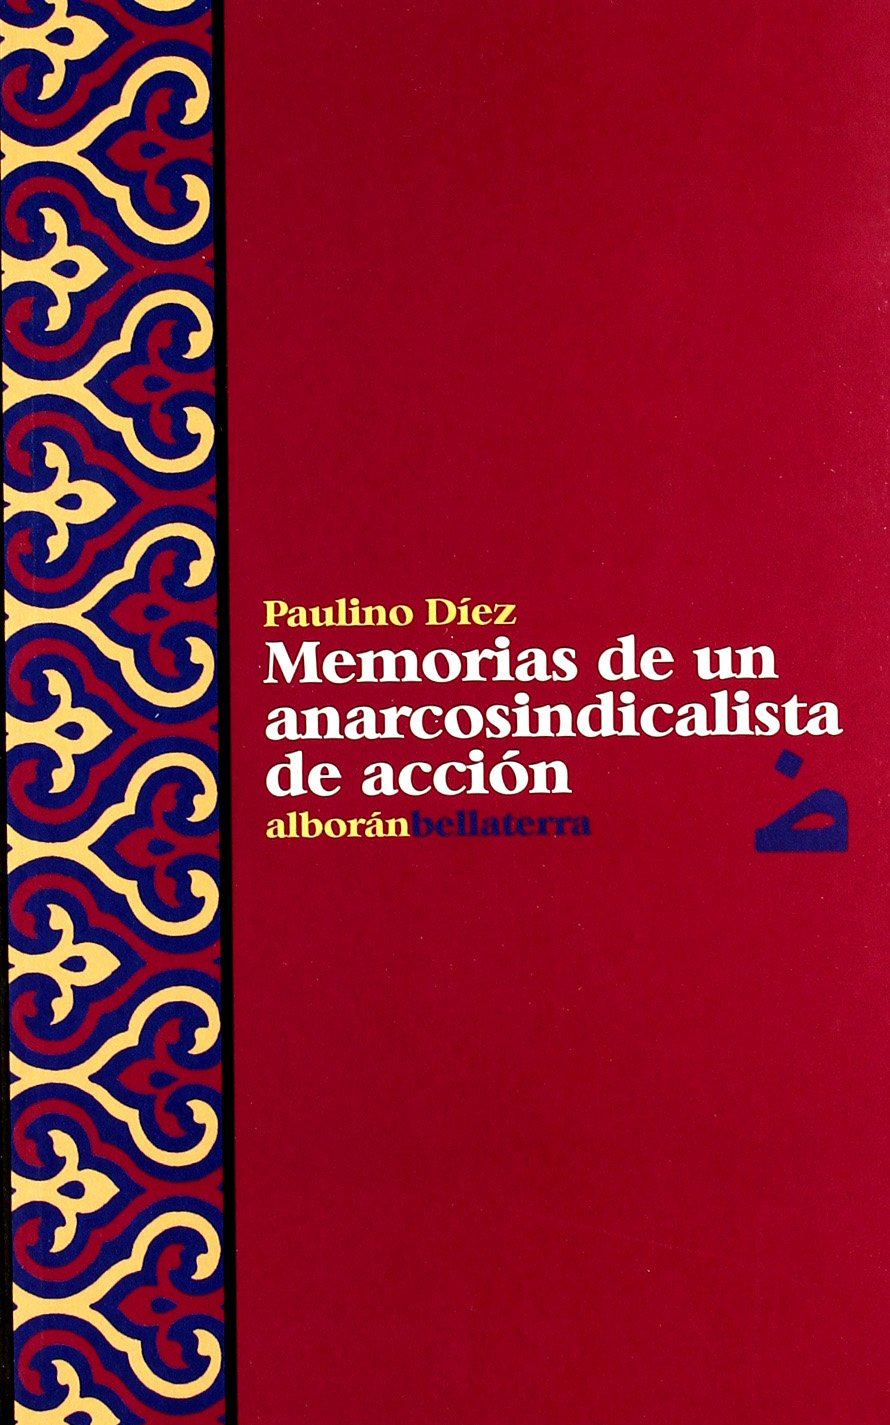 Memorias de un Anarcosindicalista de Accion/ Memories of a  Anarchist Syndicalist of action (Alboran) (Spanish Edition) PDF